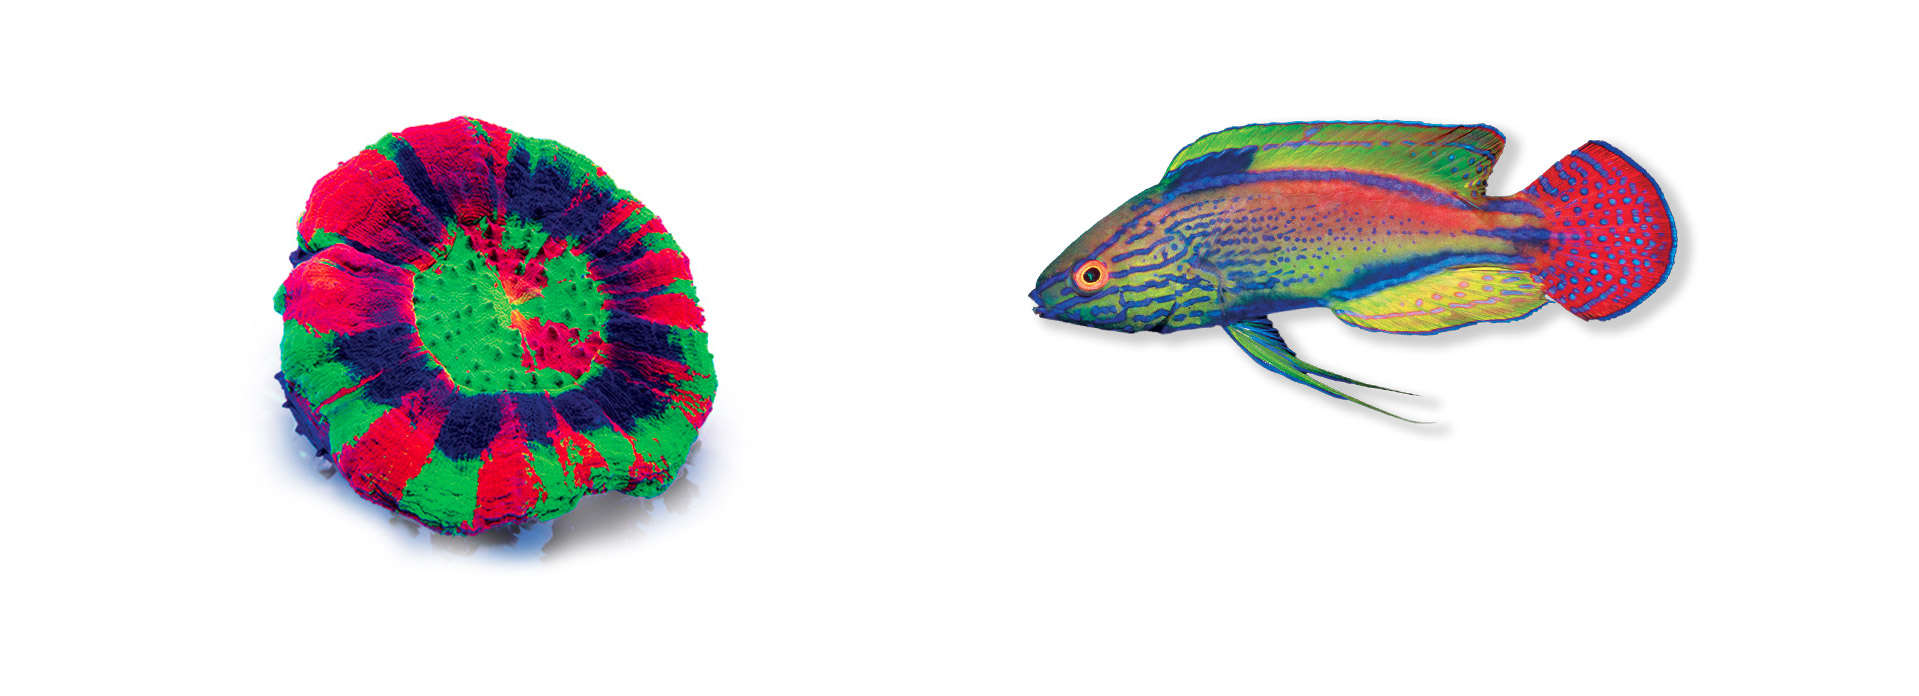 Premium corals and fishes from Down Under